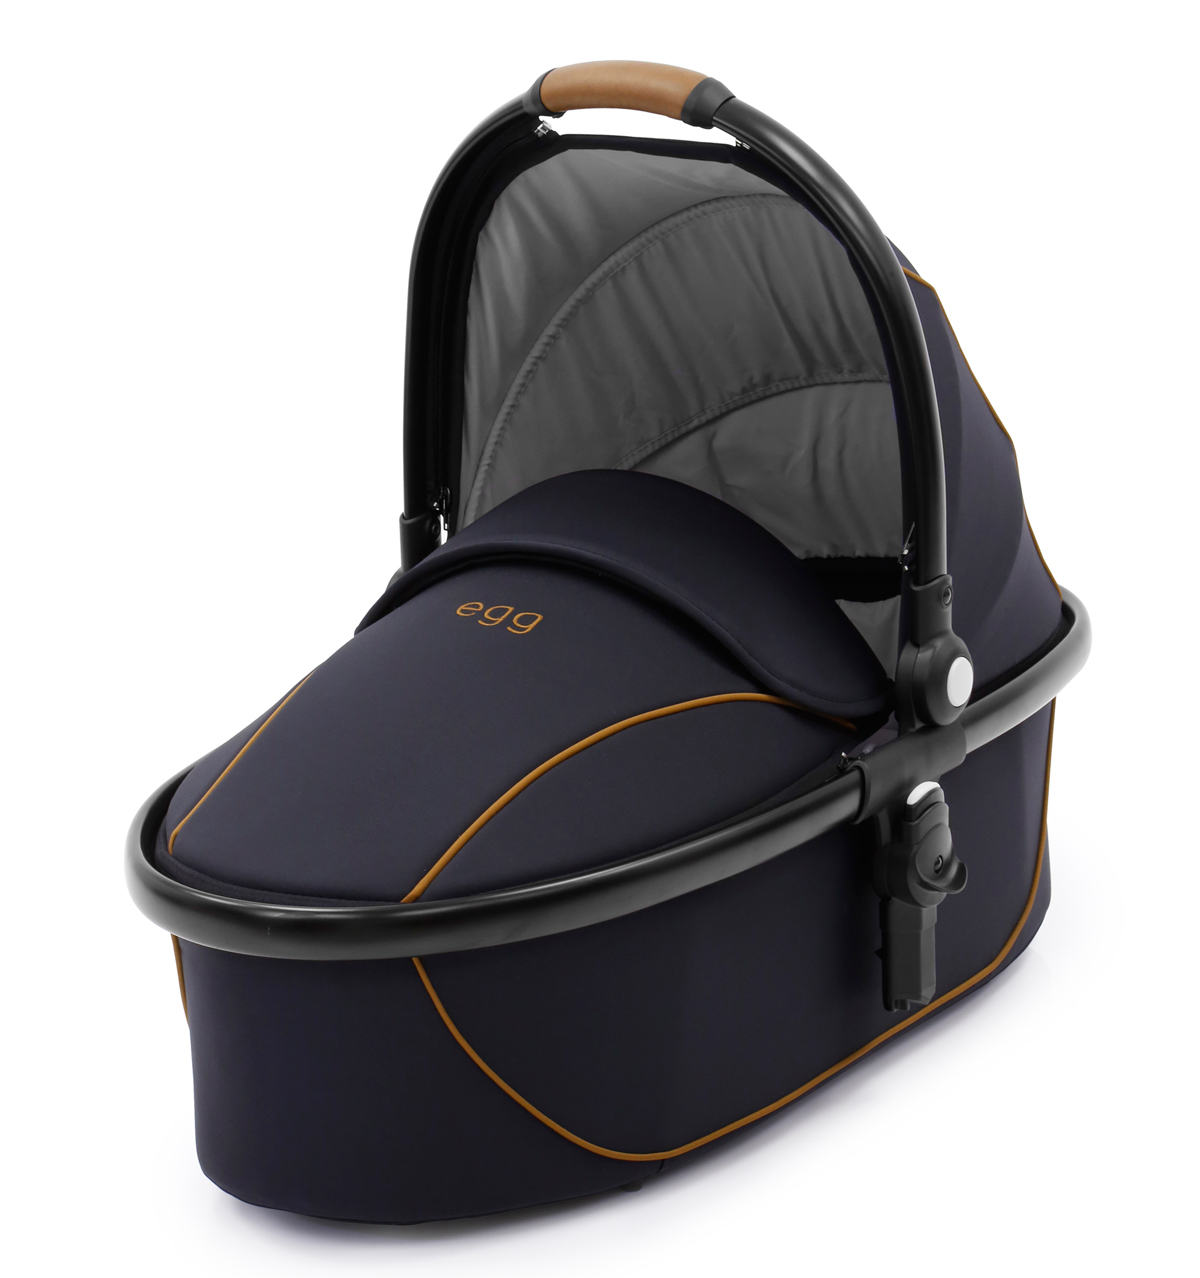 Egg Carrycot Espresso - Black Chassis